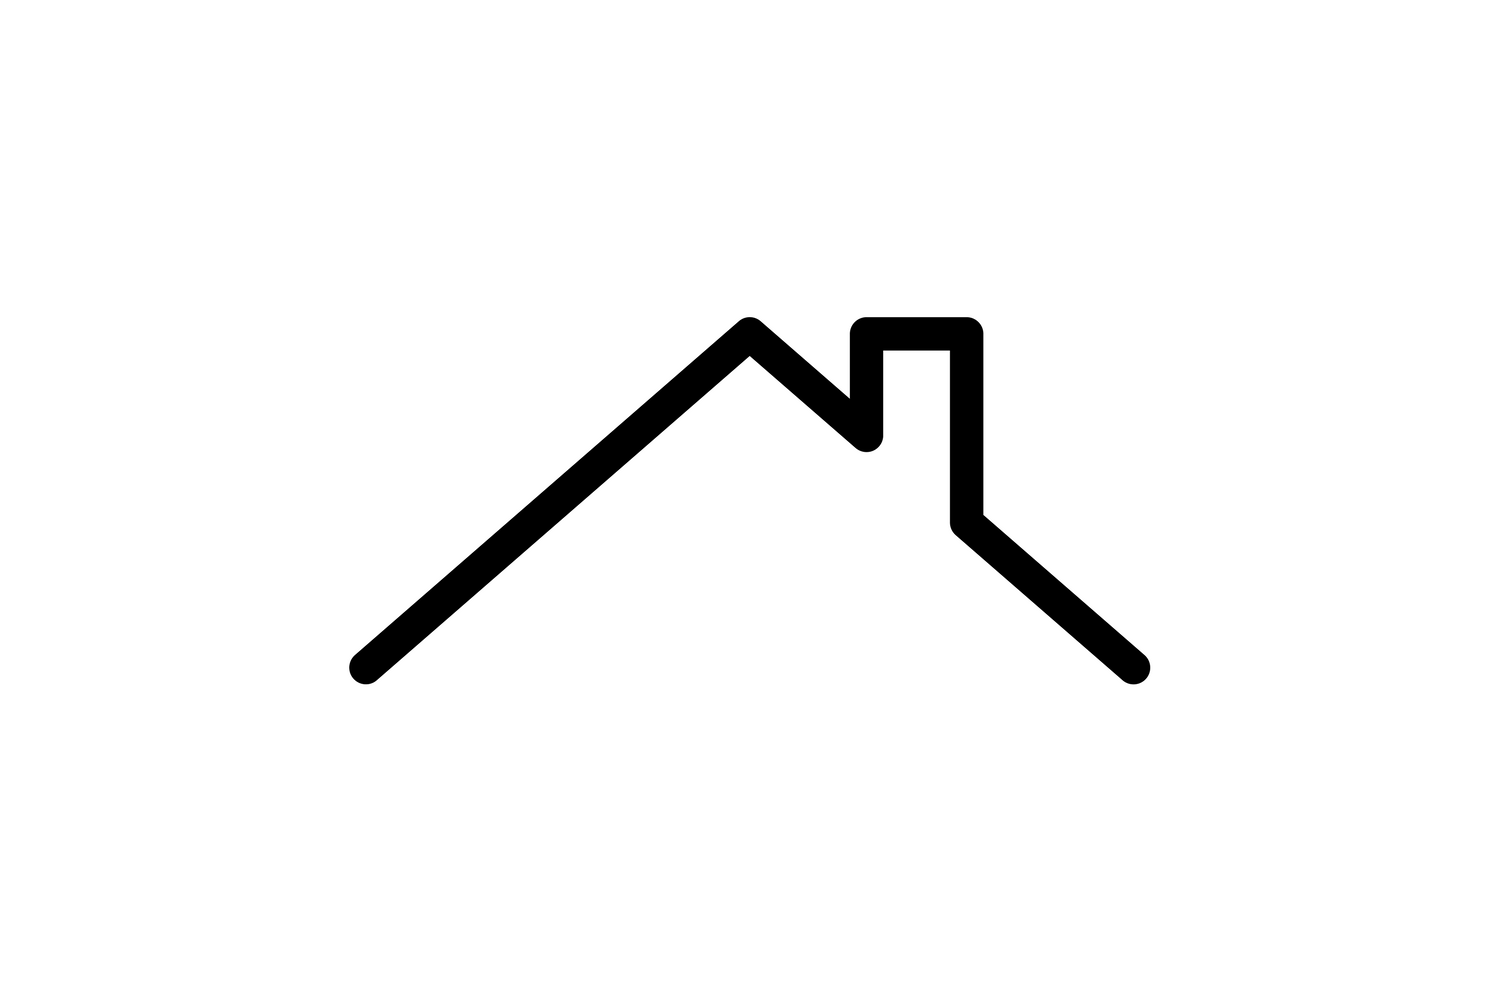 Roof Icon Png #343102.